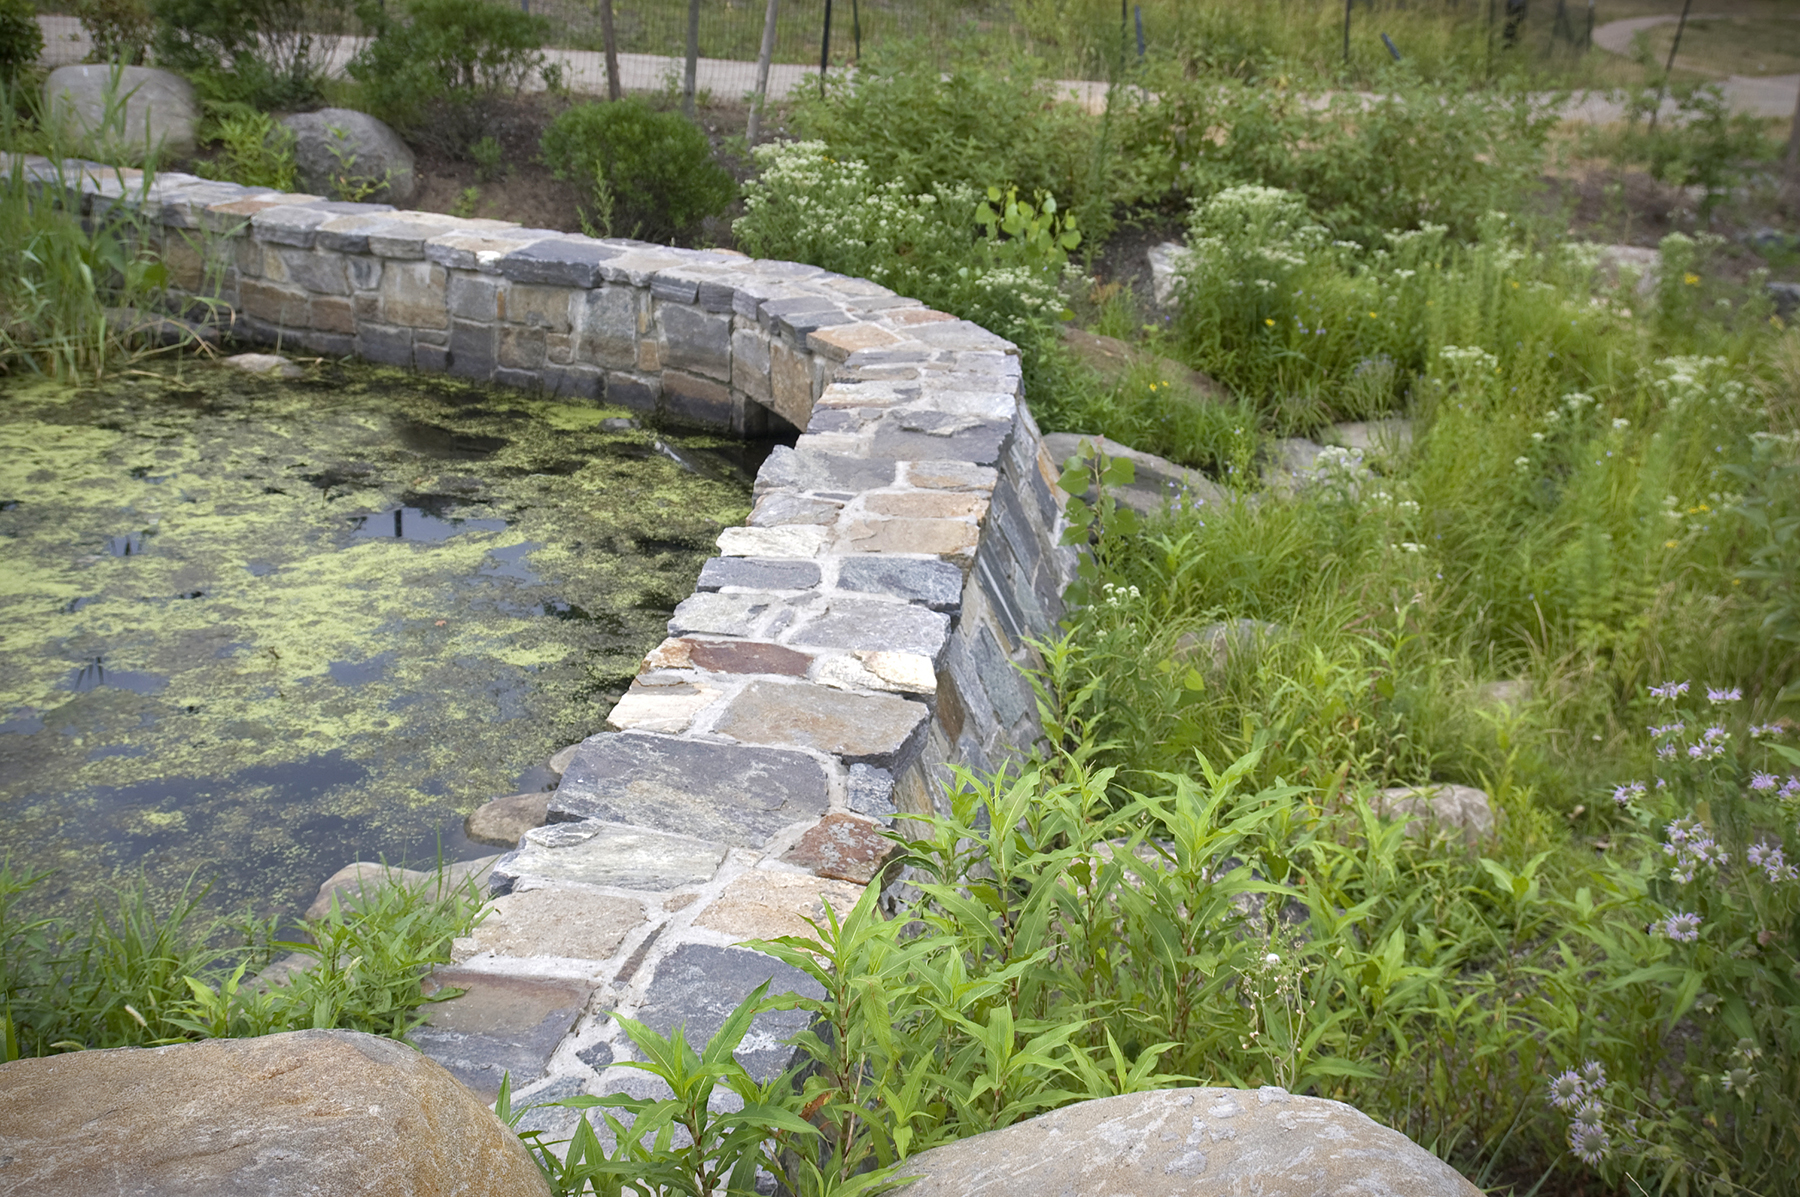 Stone used for retaining wall for pond in park